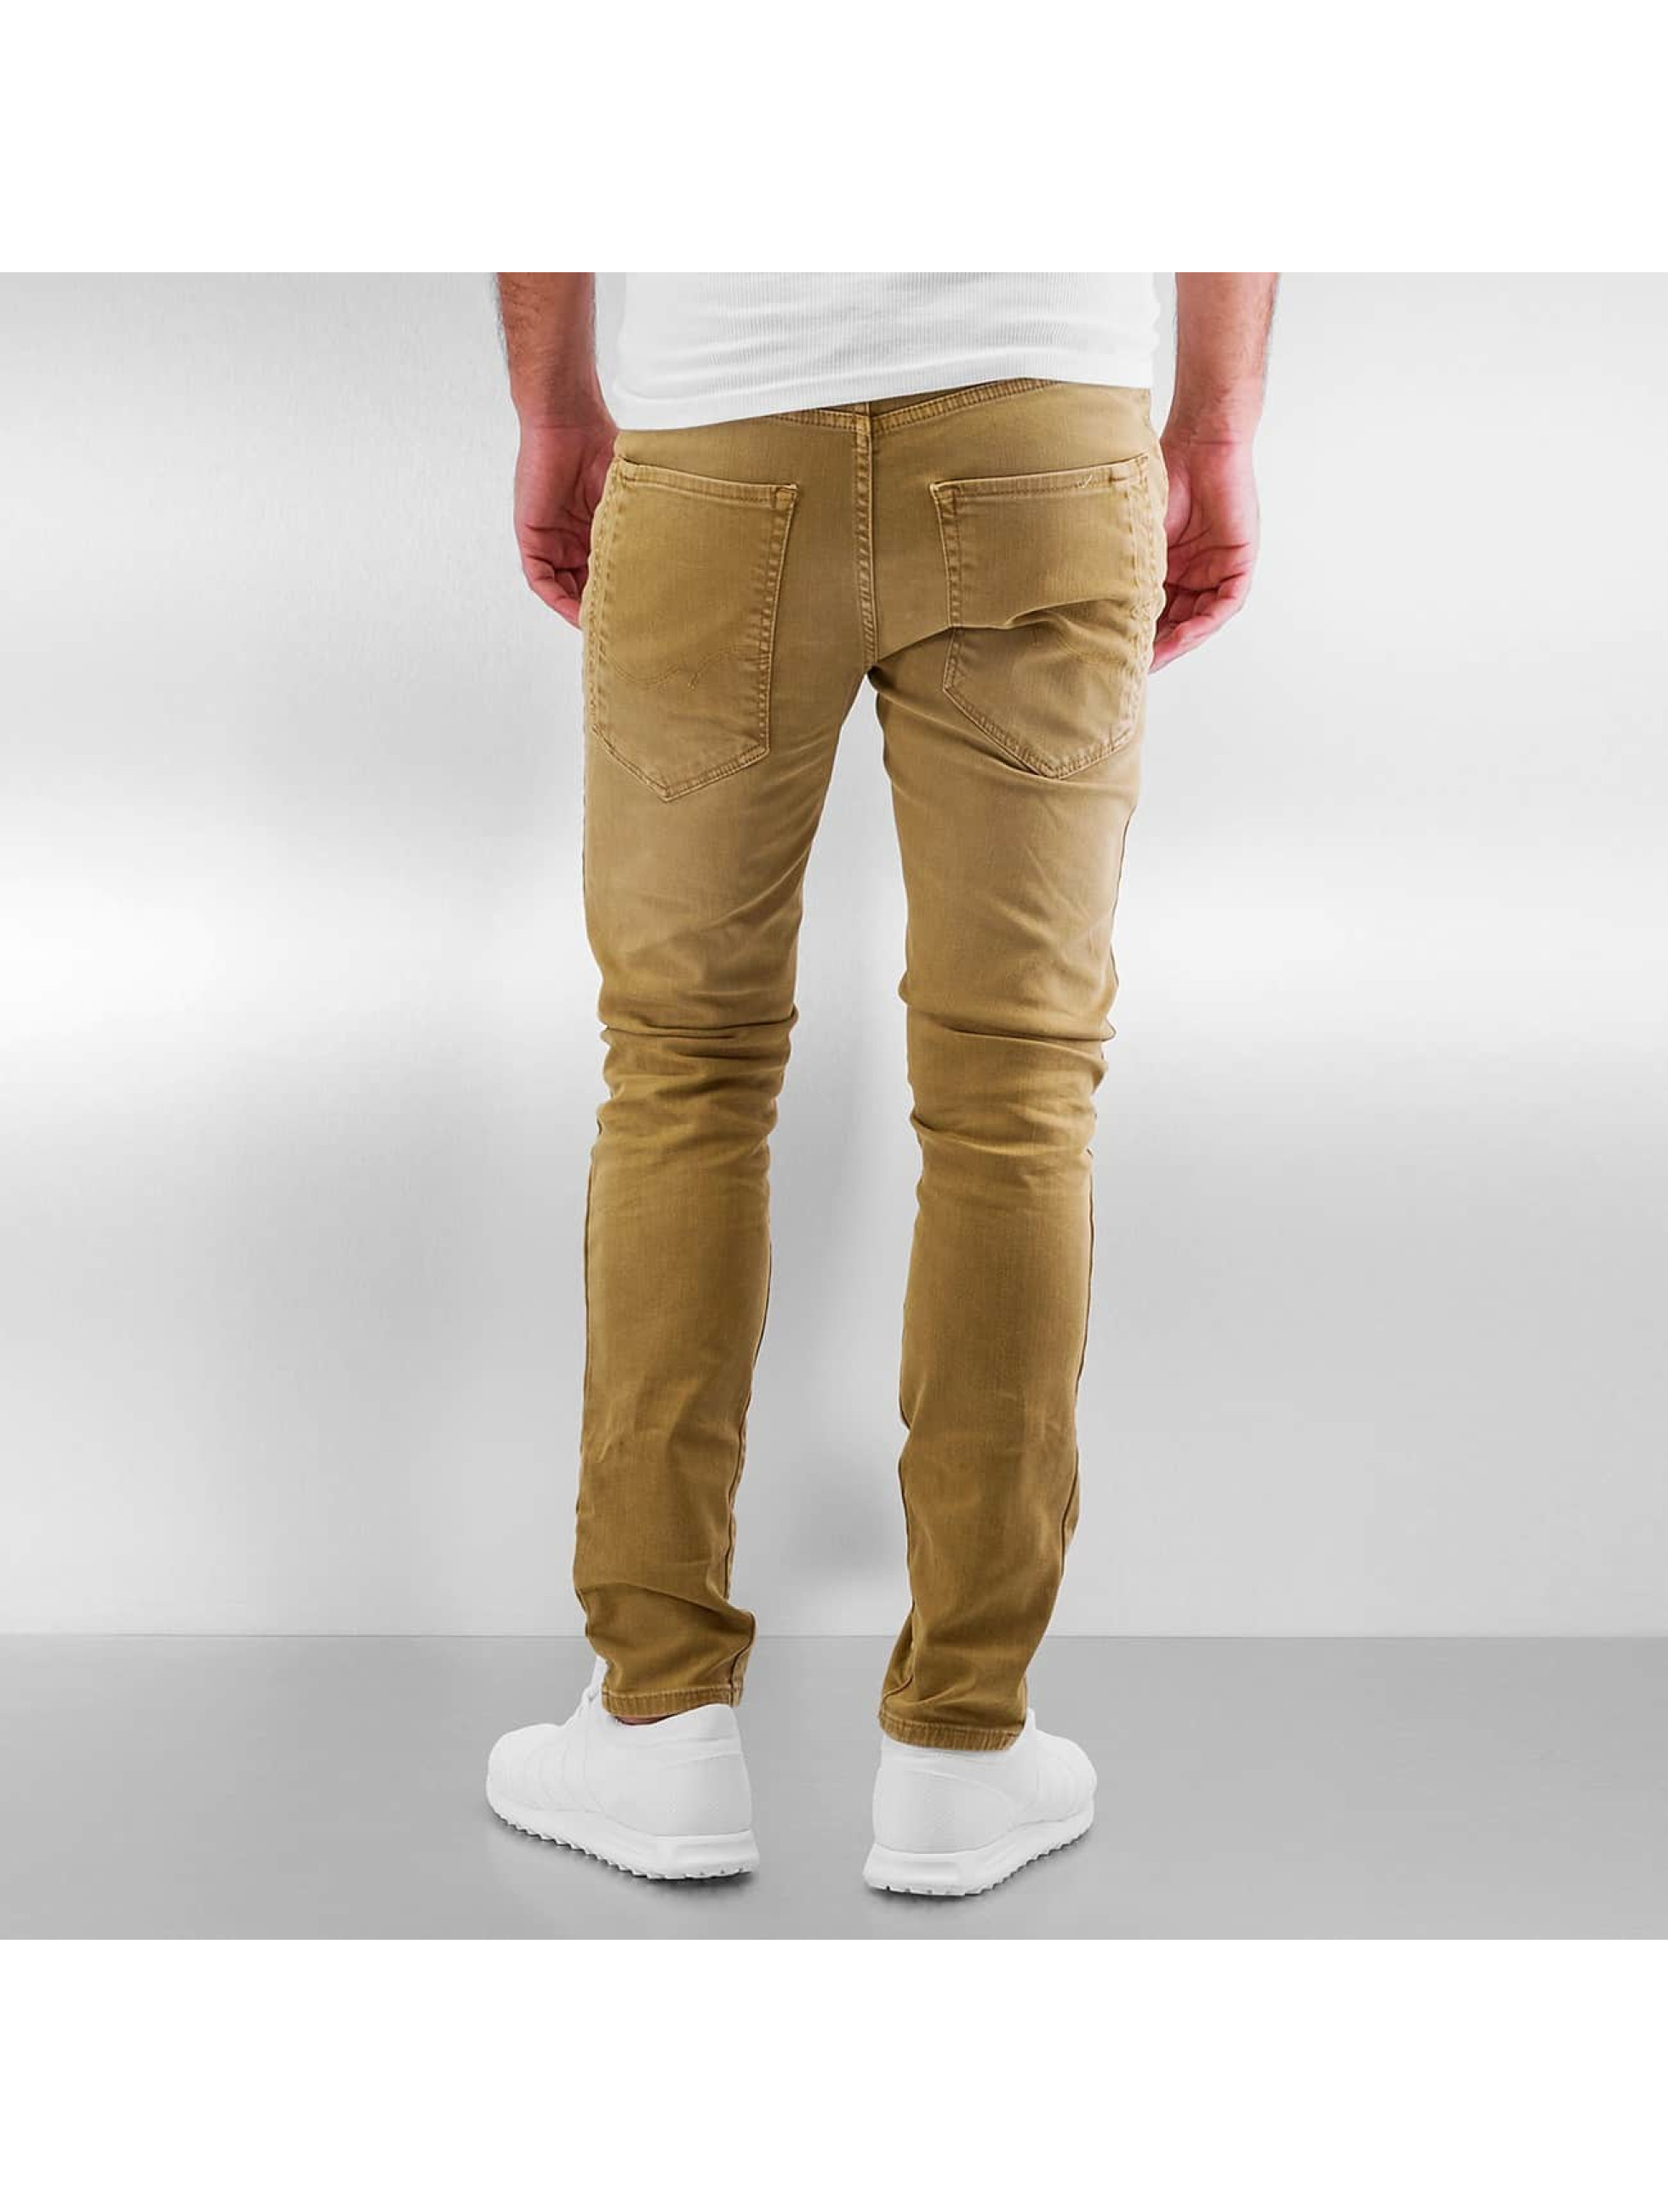 Jack & Jones Slim Fit Jeans jjIluke jjEcho JOS 999 brun